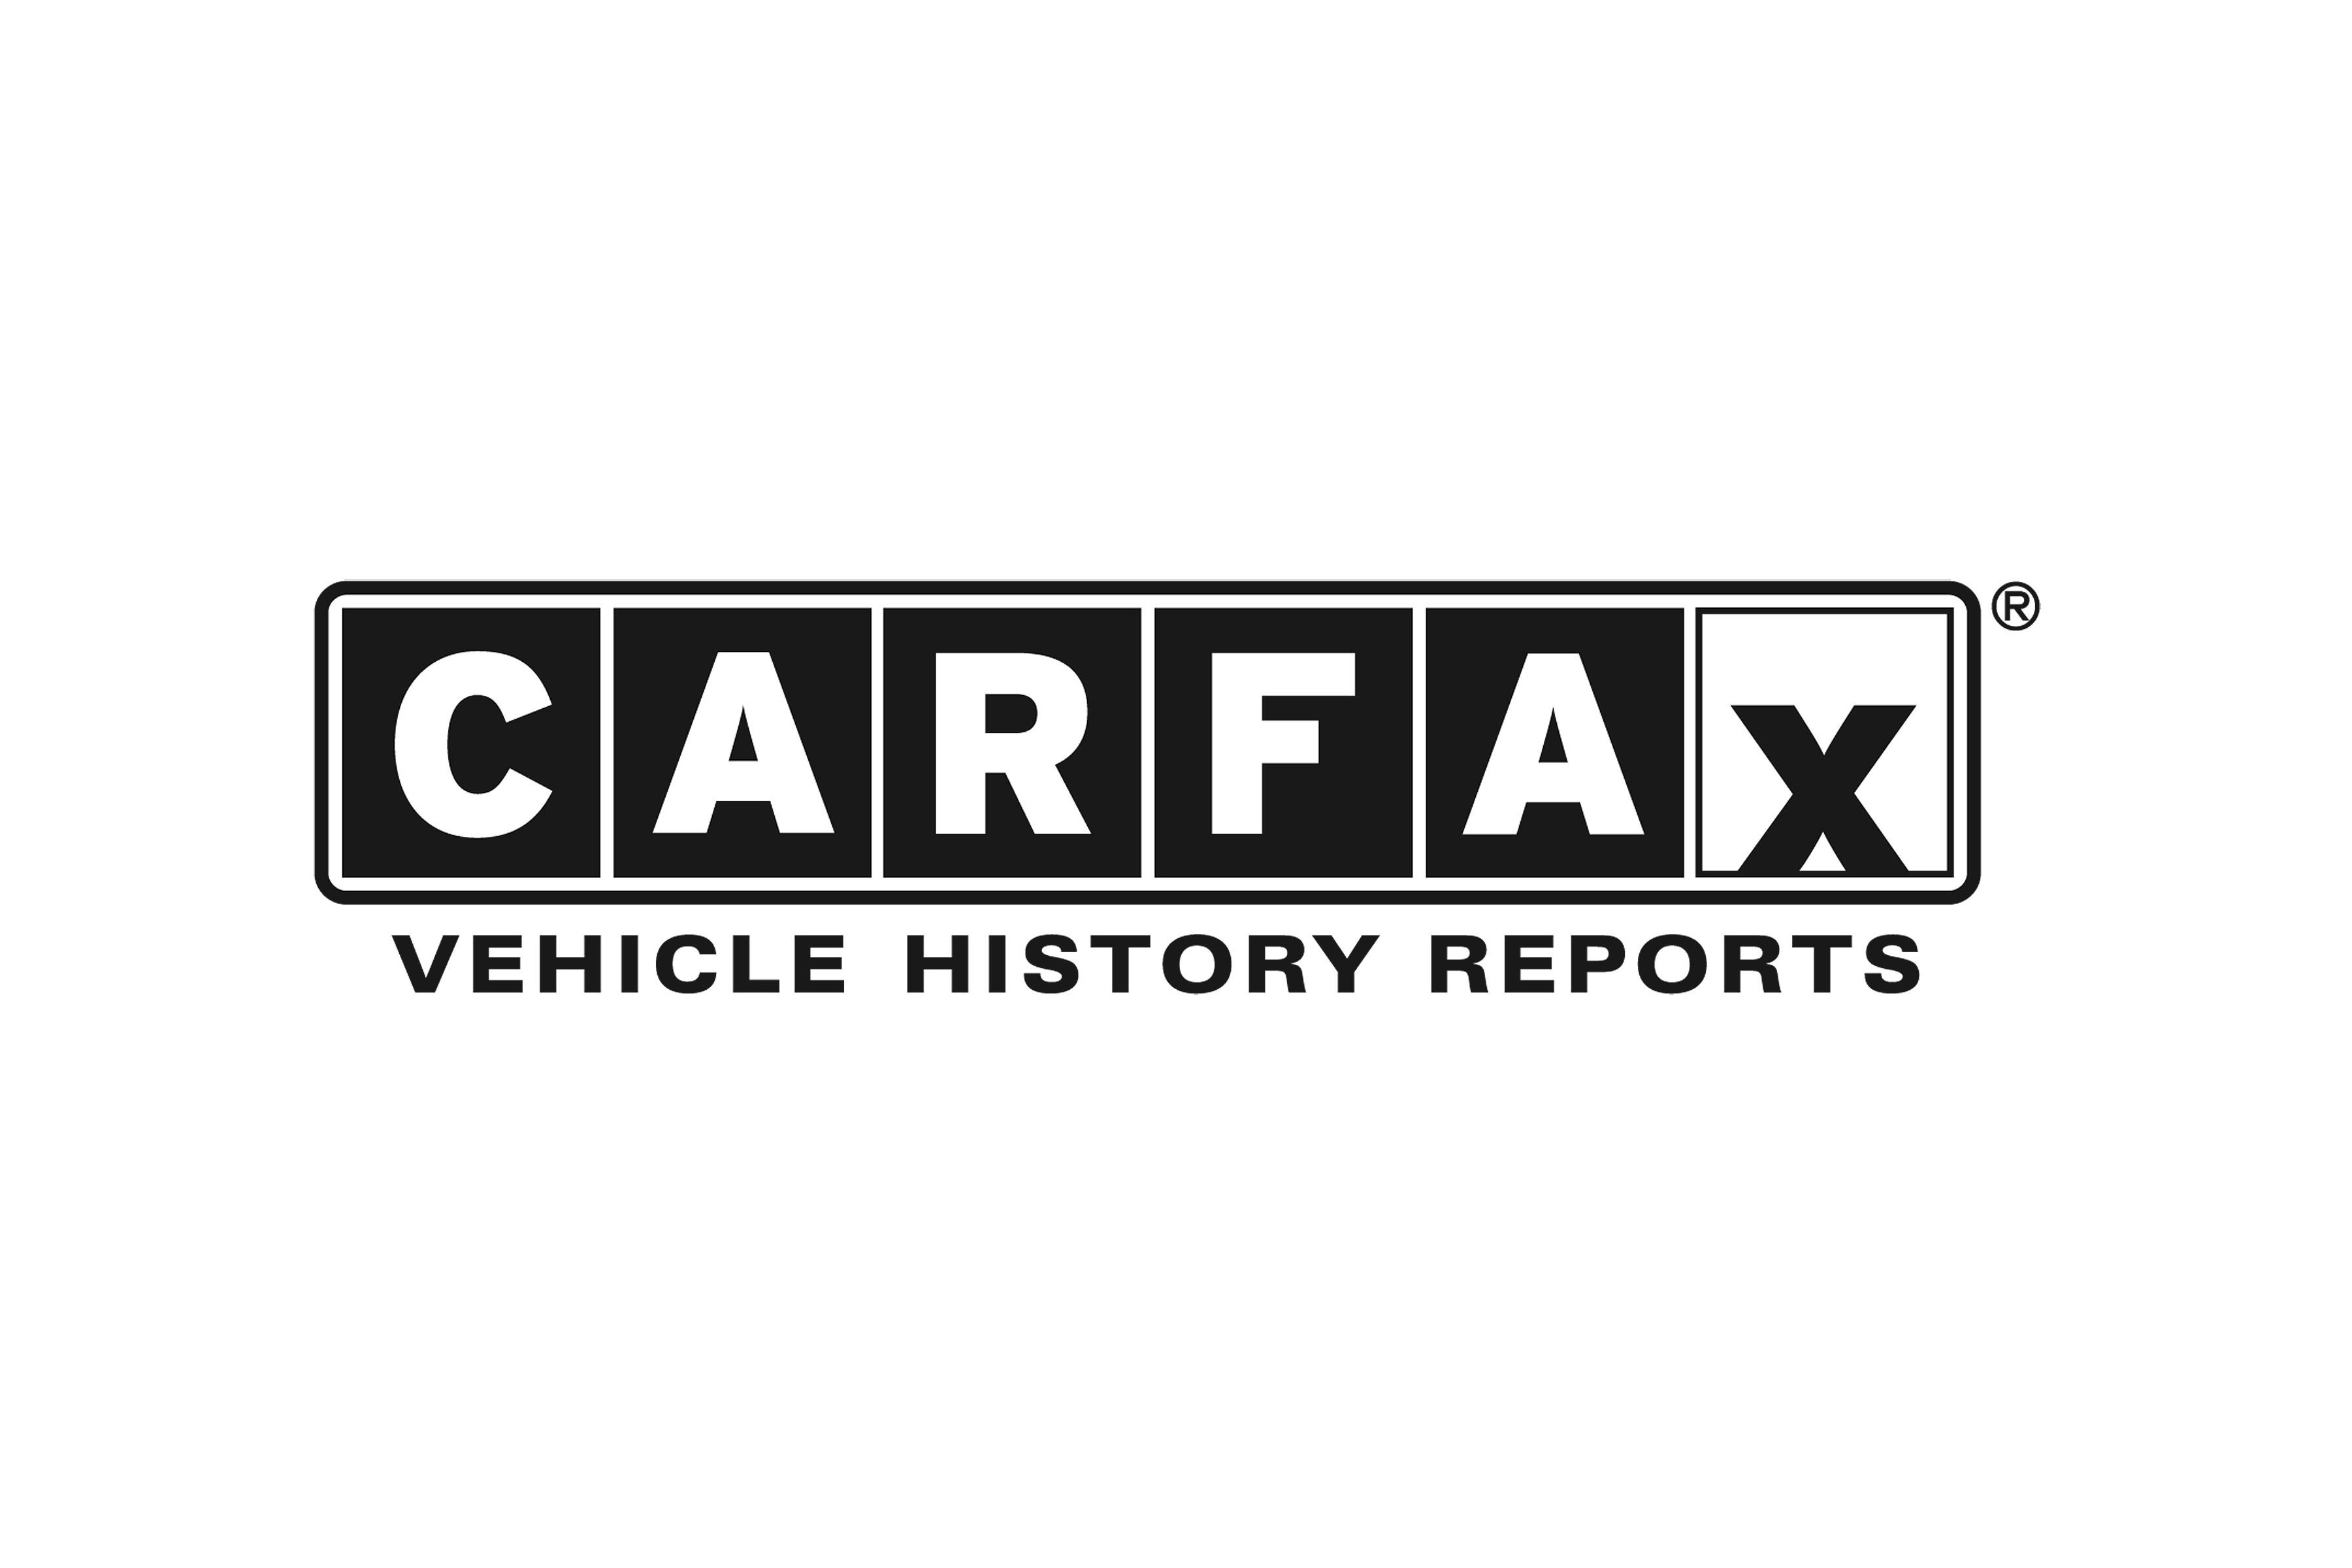 Carfax Being Sued By 120 Dealerships With Monopoly Allegations